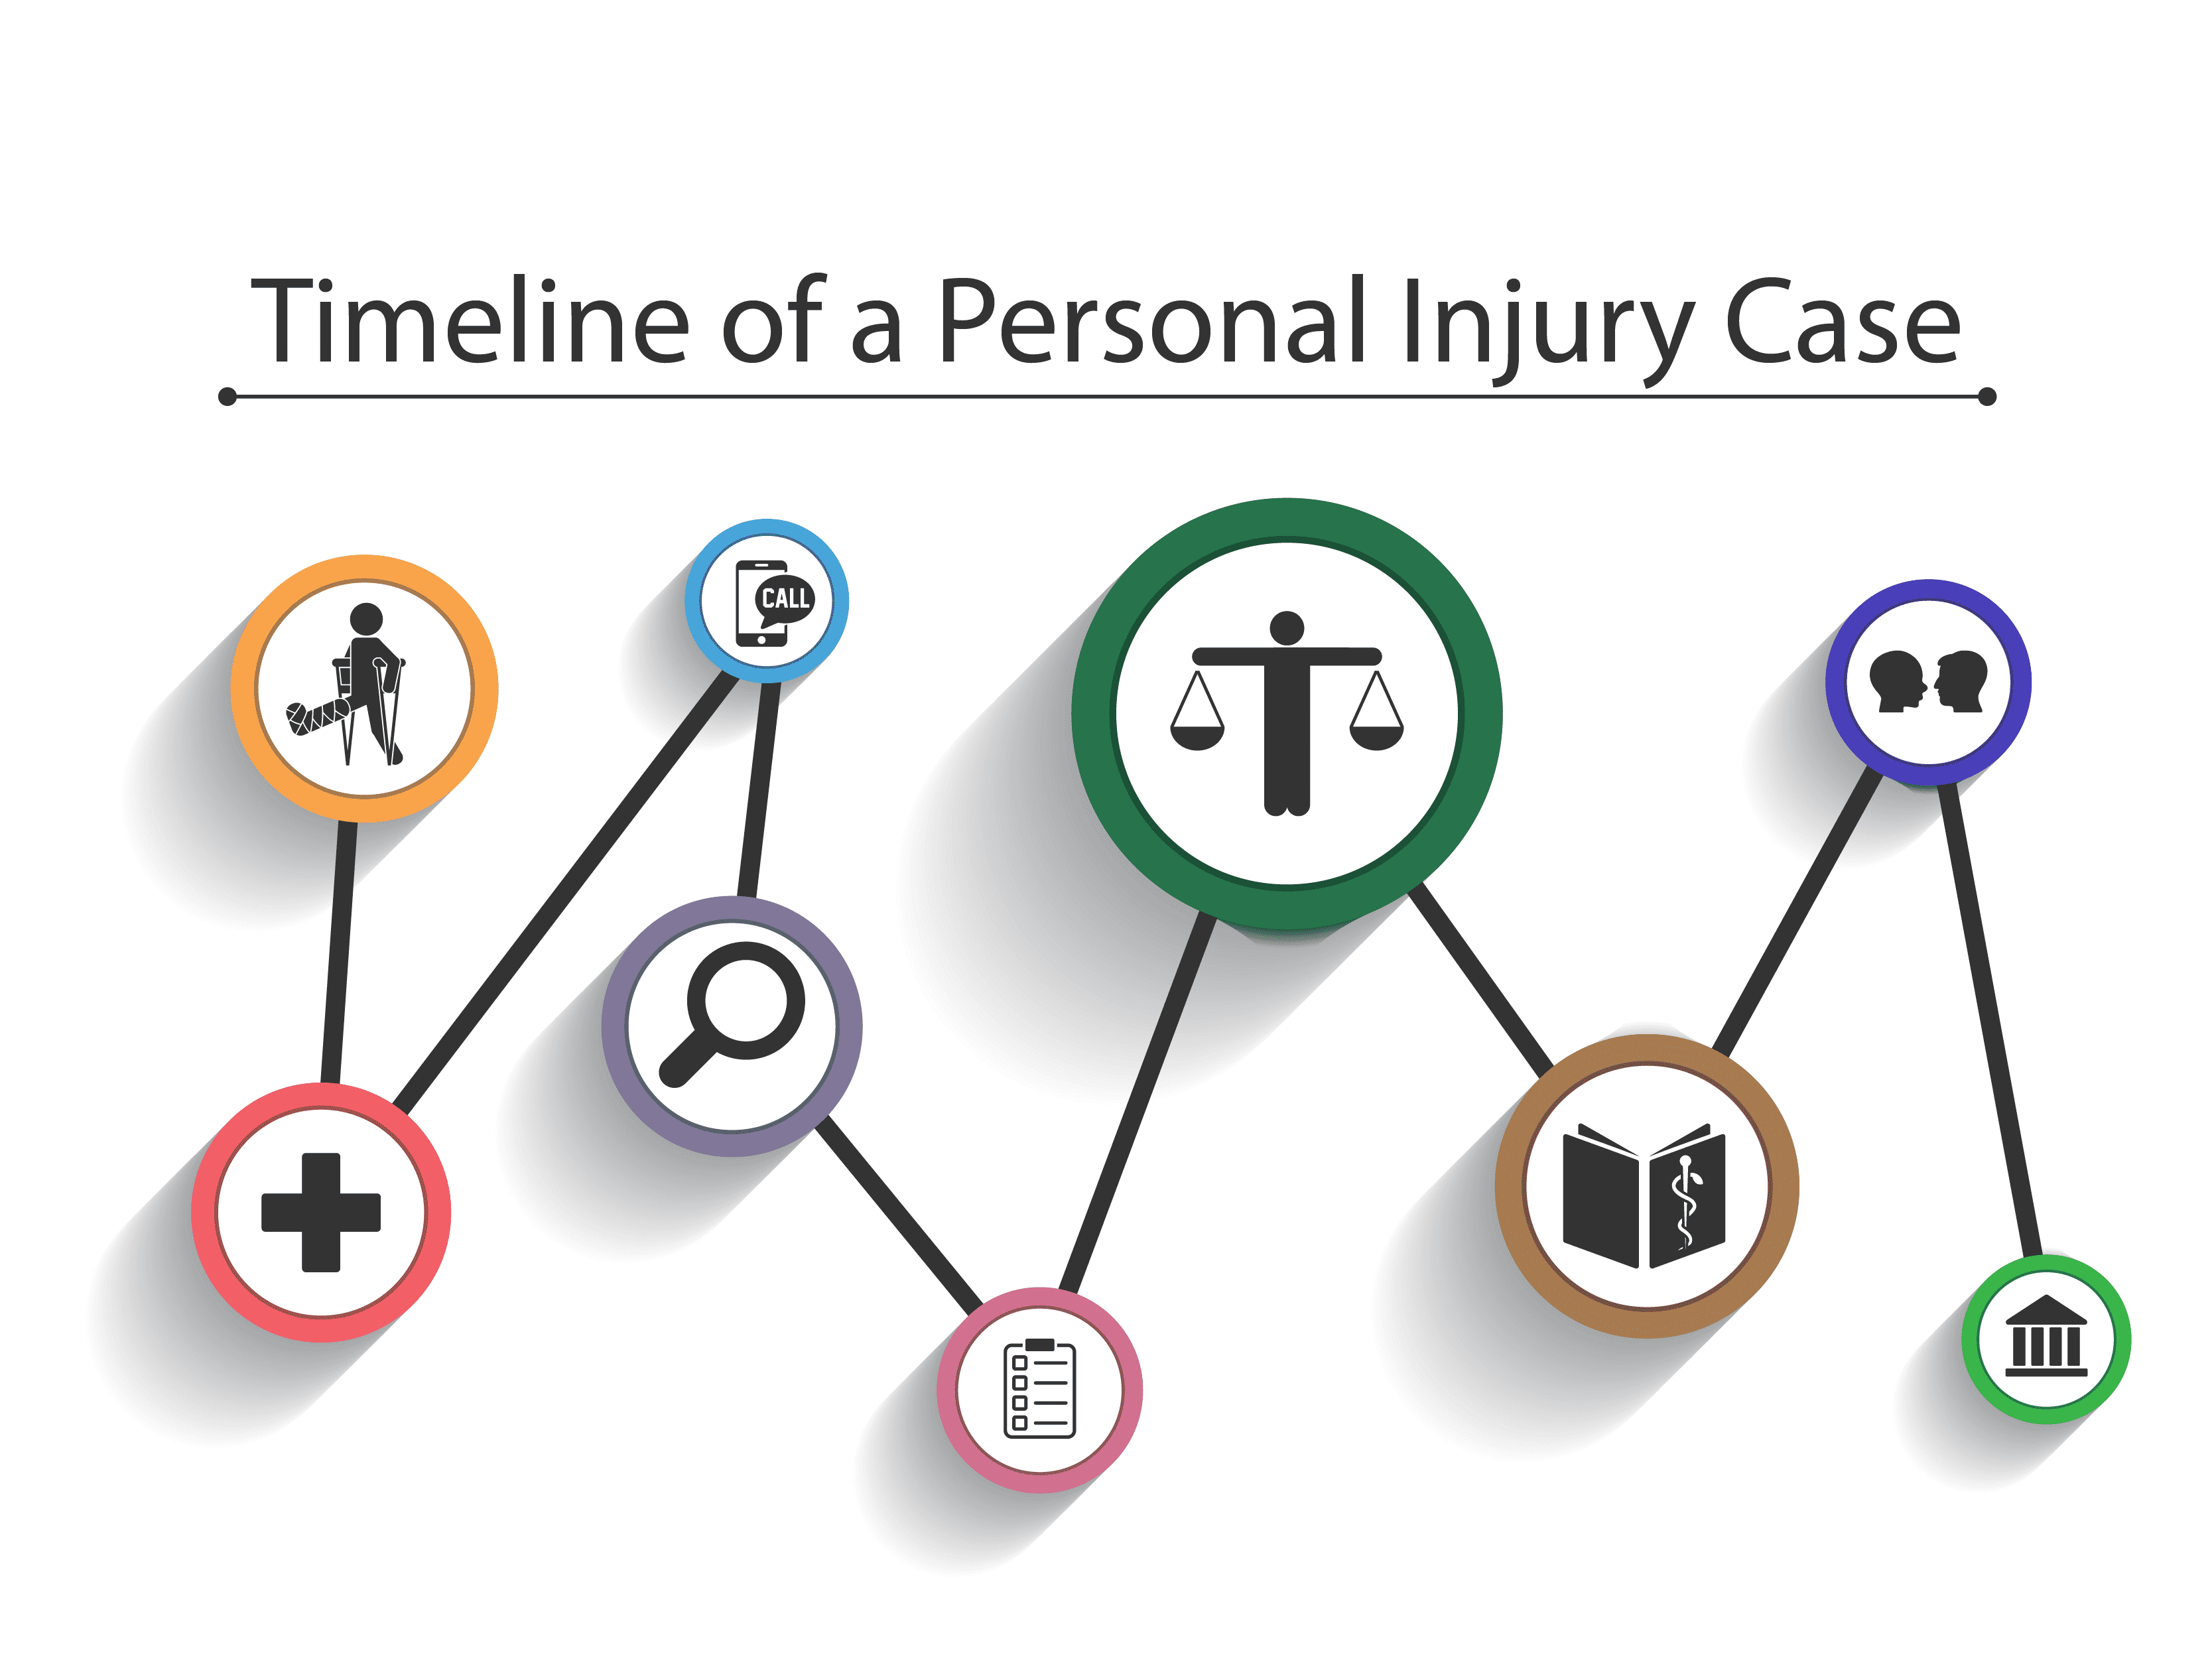 Timeline-of-a-Personal-Injury-Case-Infog